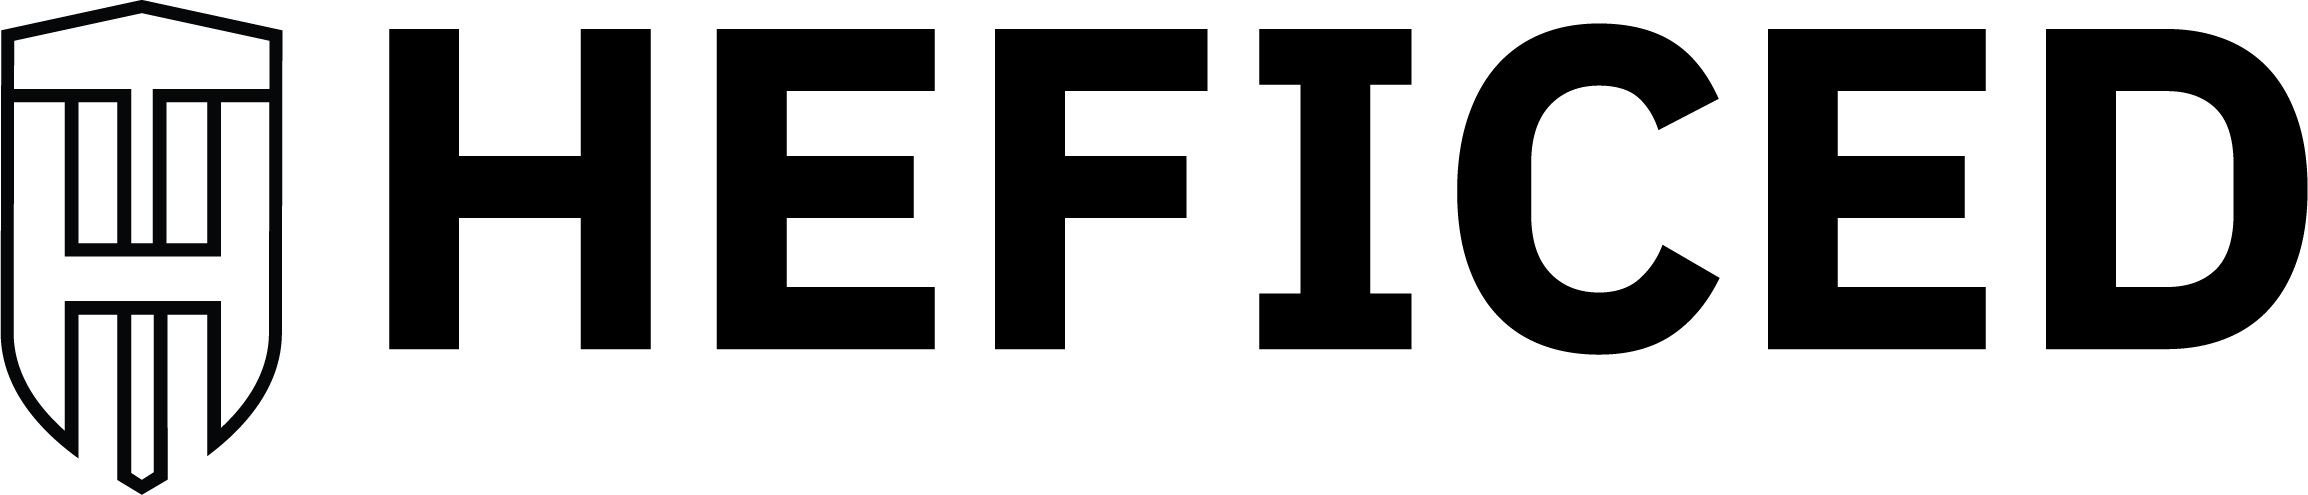 Heficed